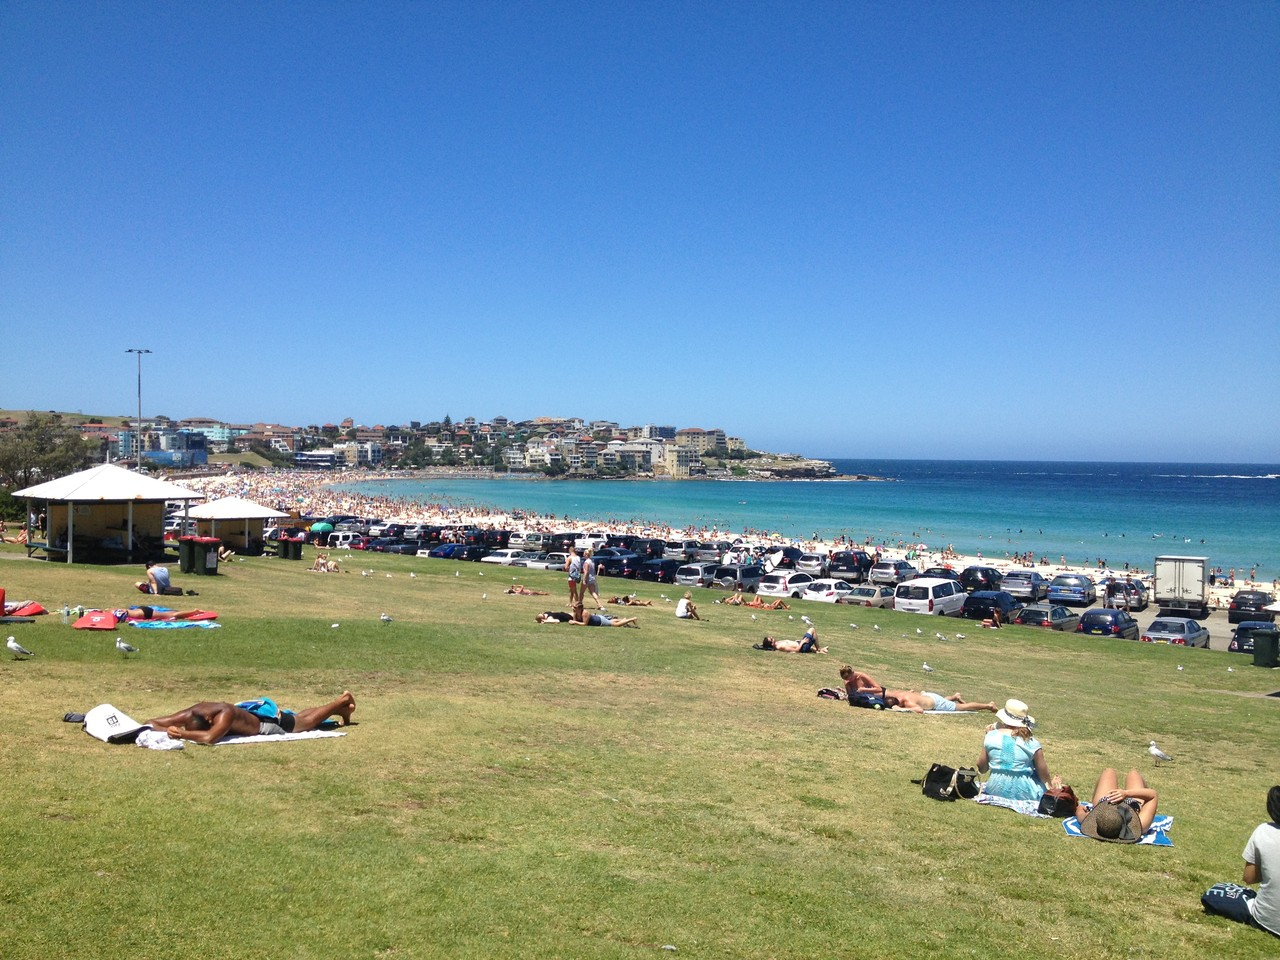 Next day managed to nip down to Bondi beach to have a look — at Bondi Beach.